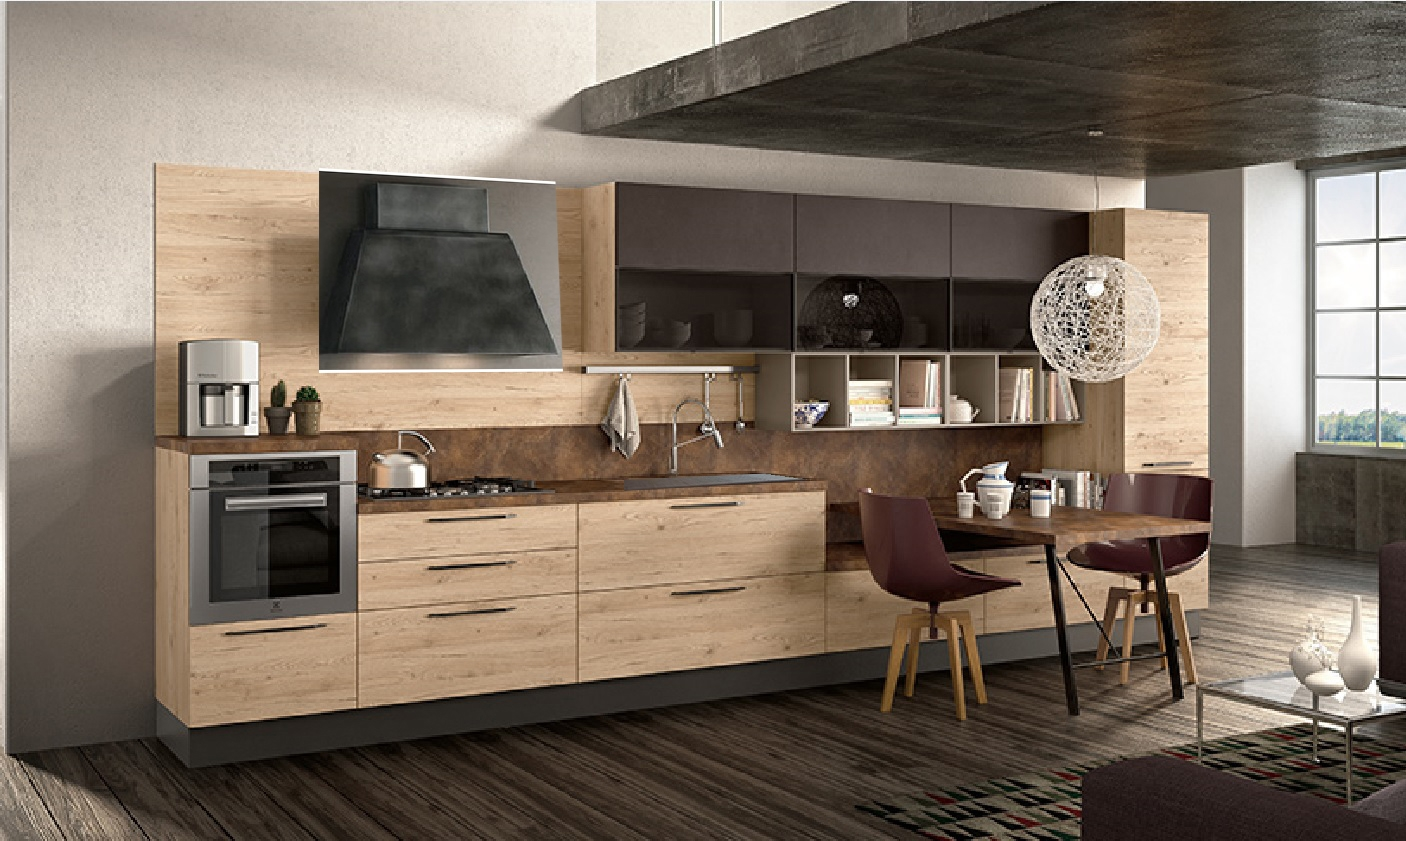 cucina moderna industrial city urban in offerta outlet nuovimondi ...